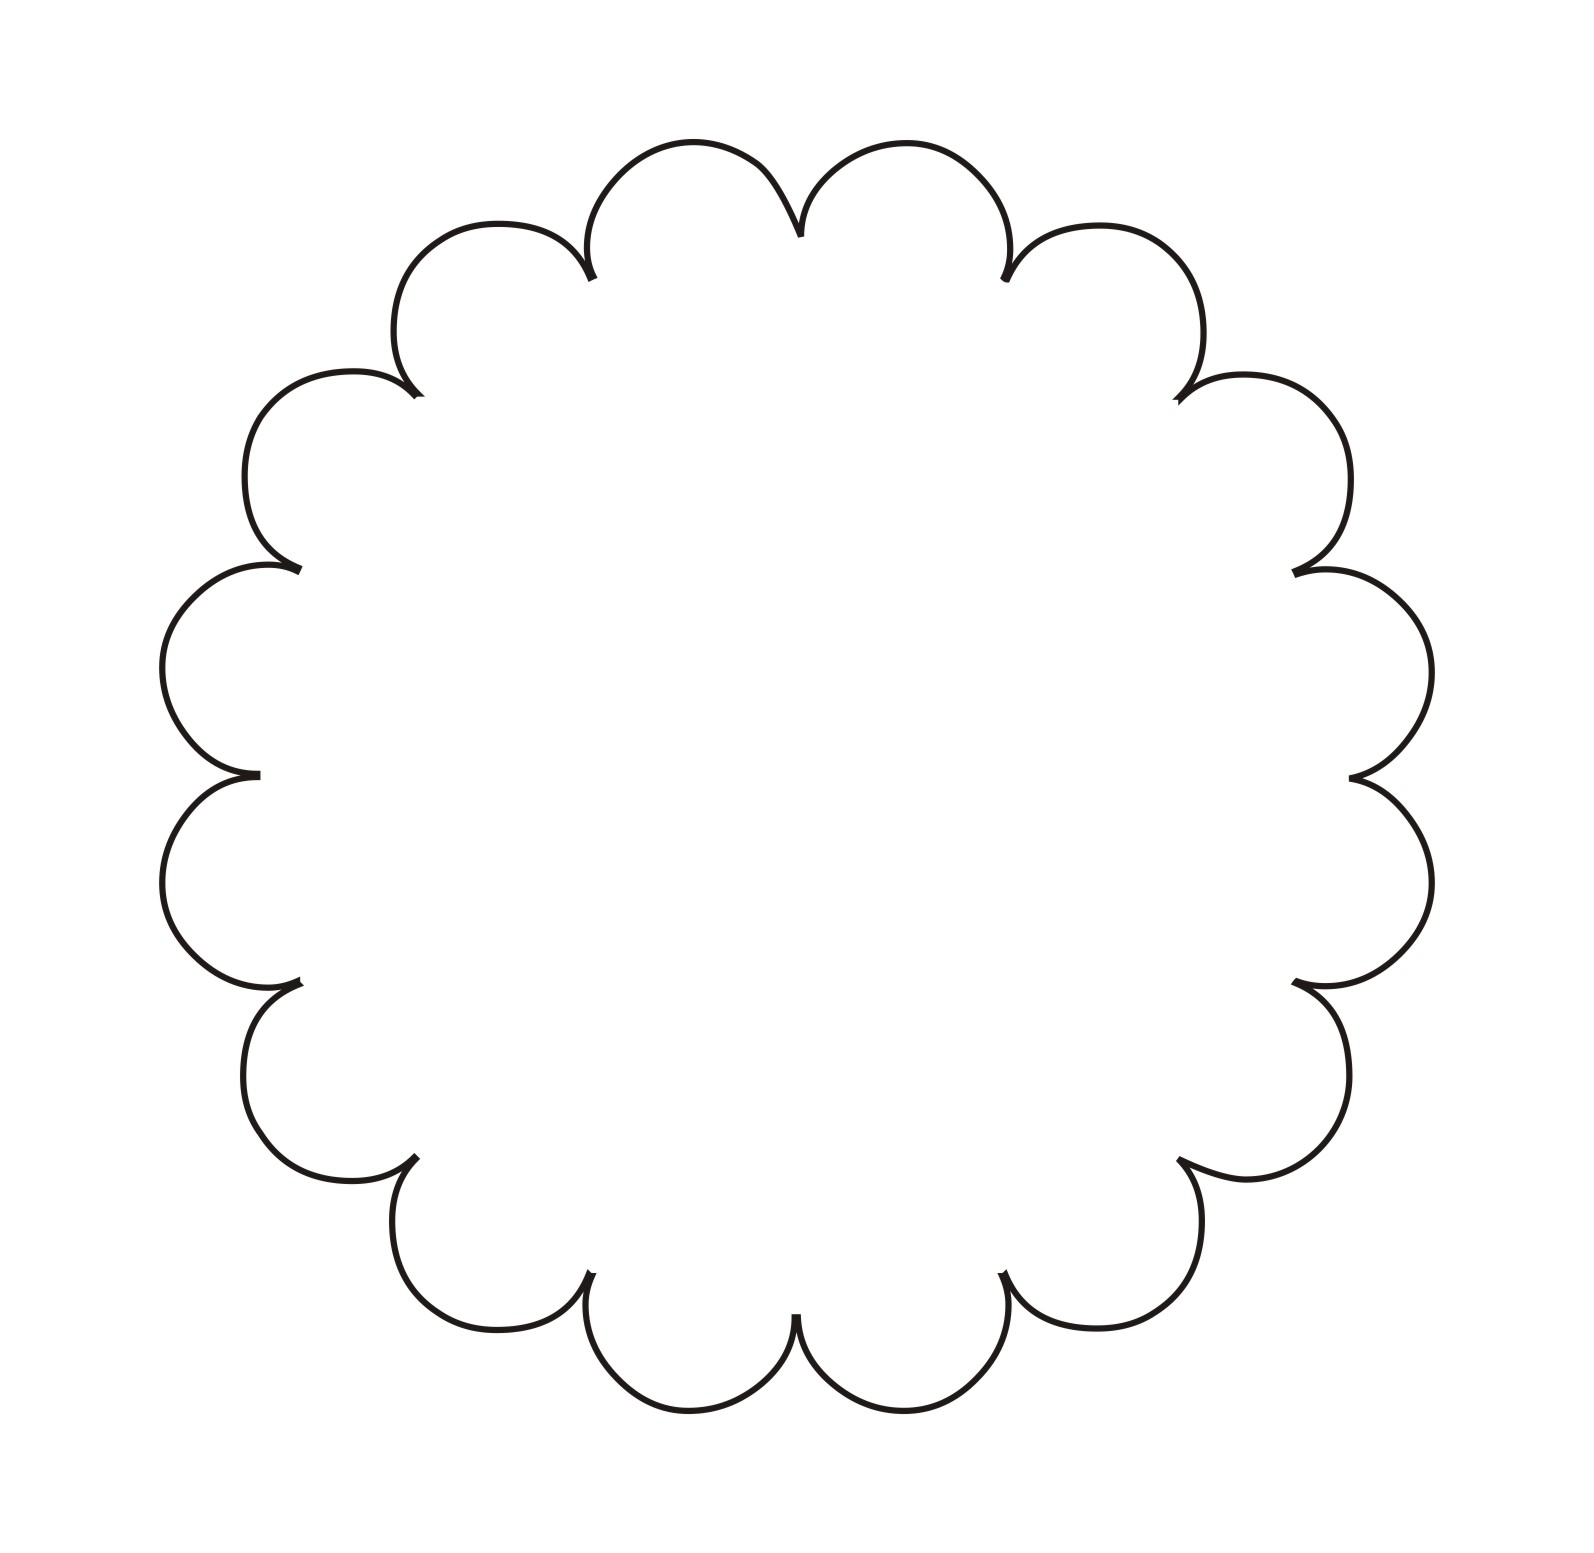 circle templates to print - scallop circle template png clipart best